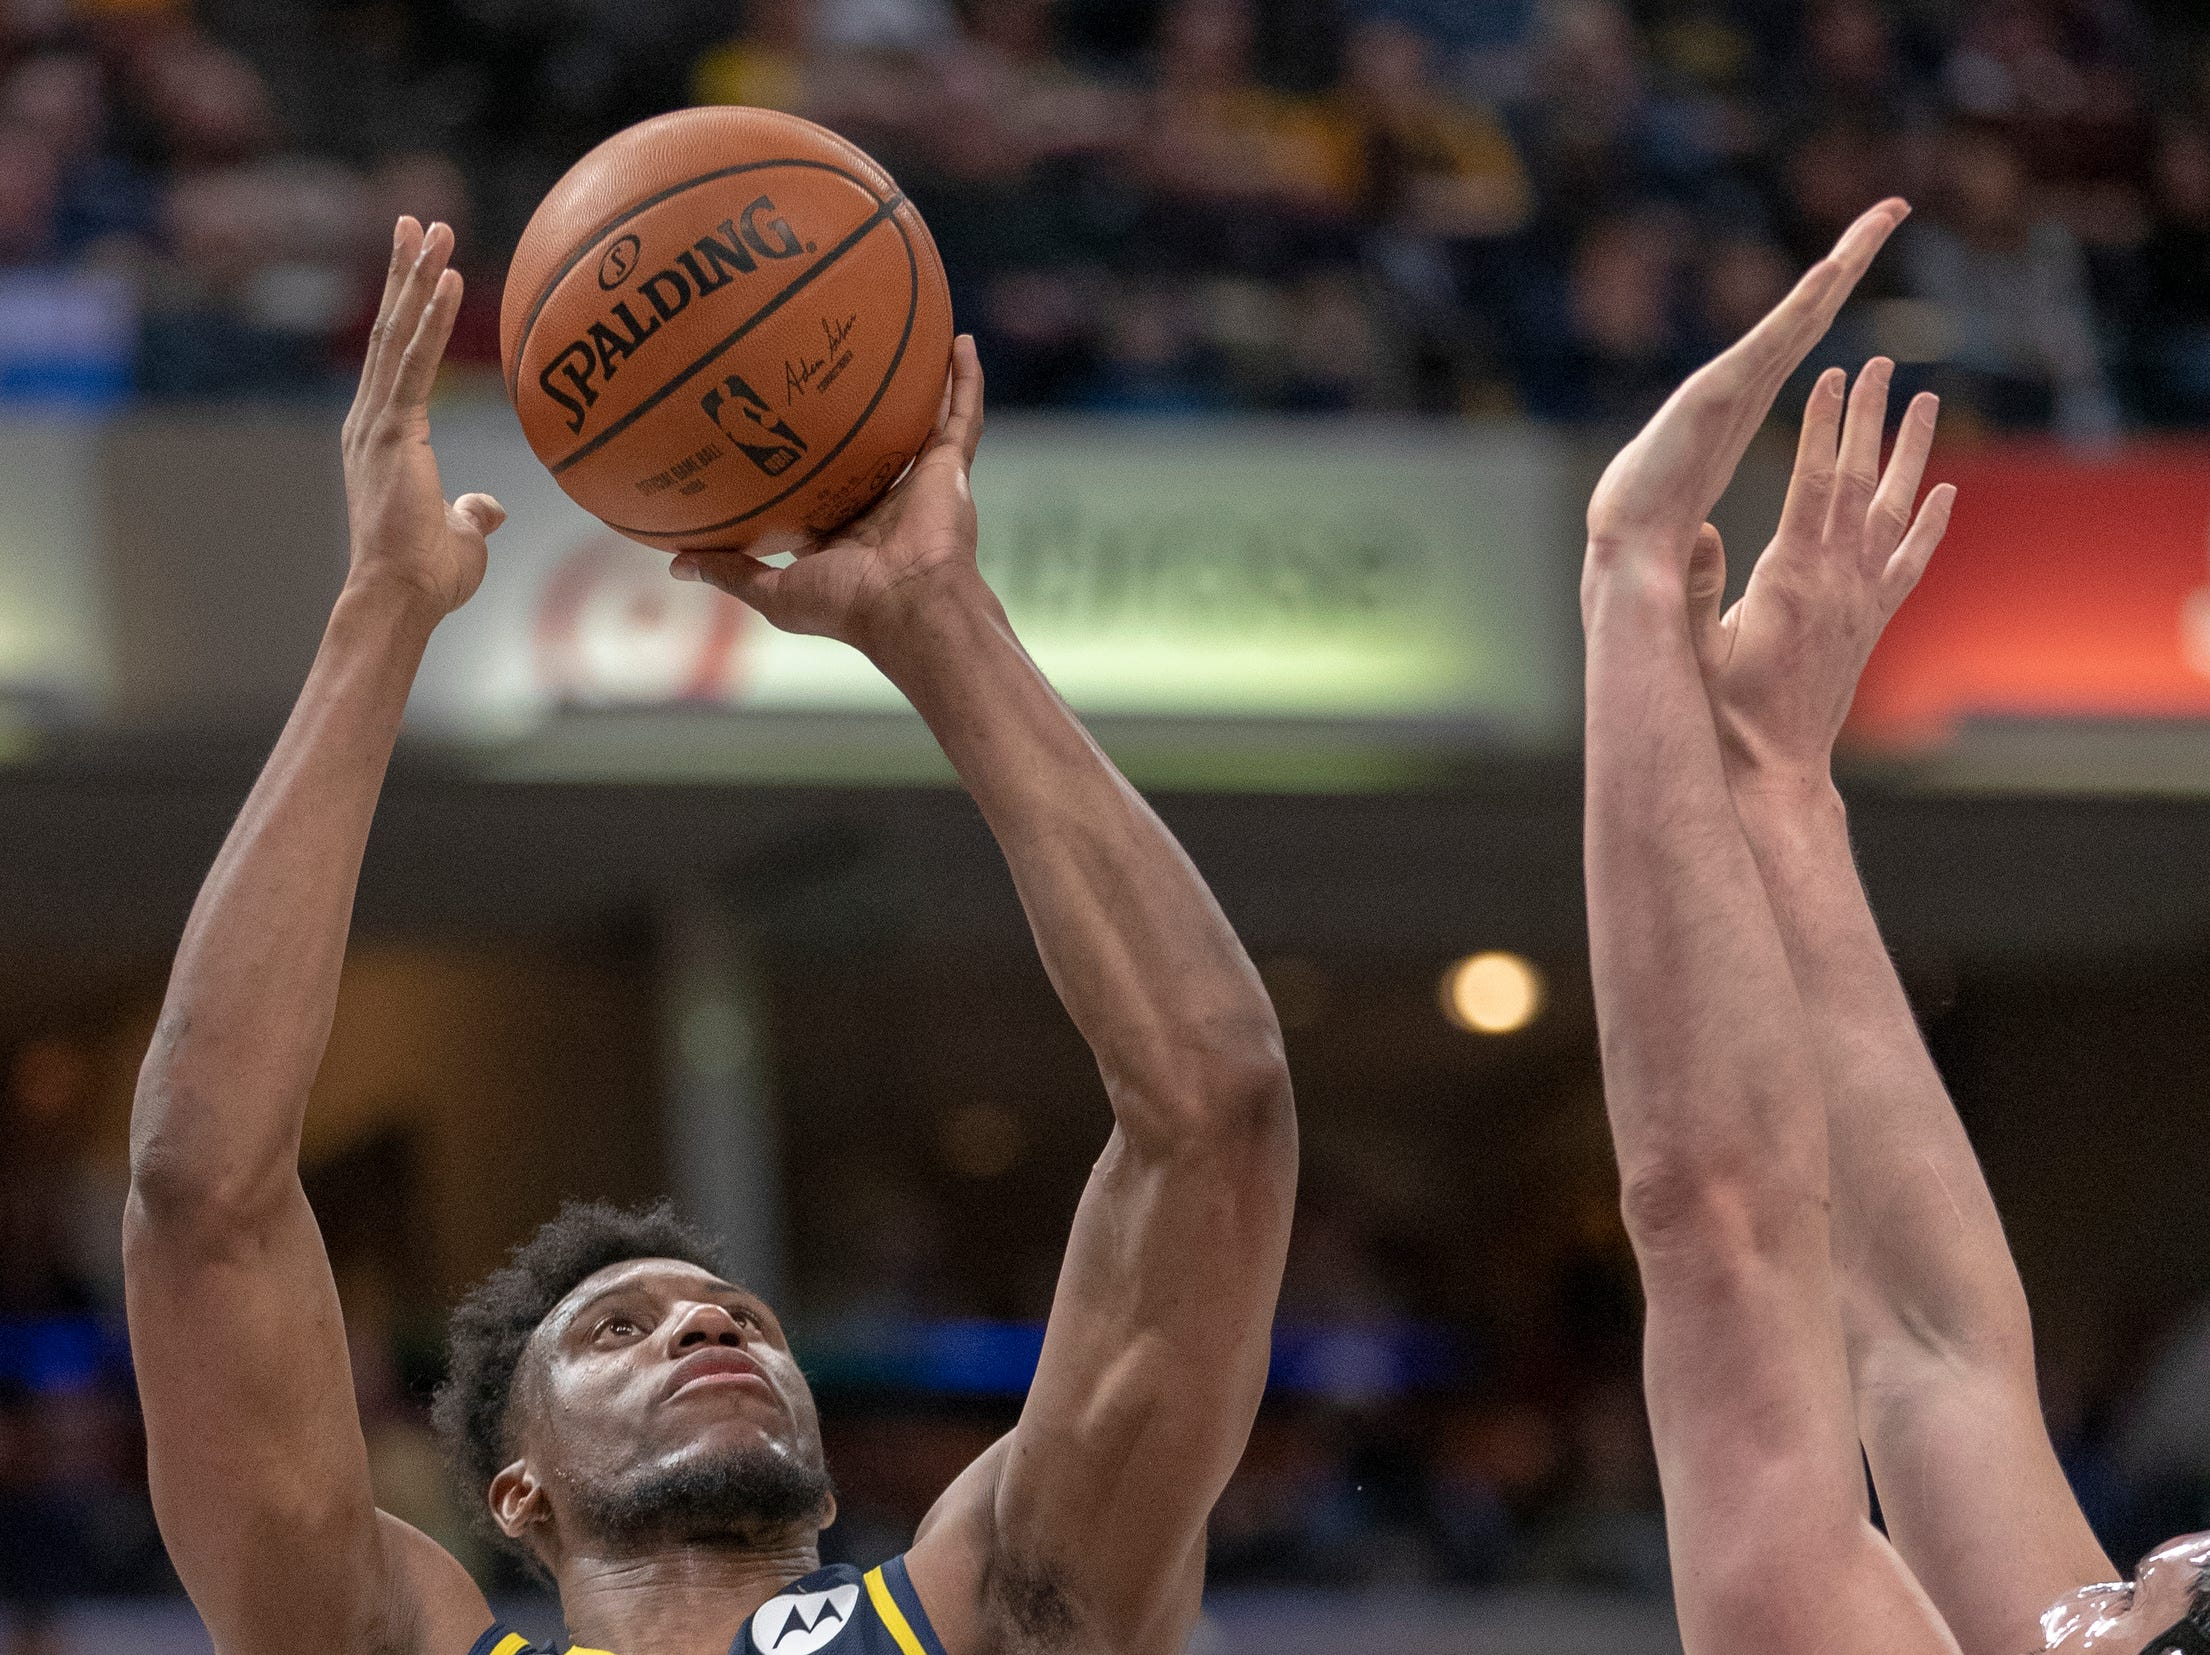 Thaddeus Young of the Indiana Pacers shoots against Ersan Ilyasova of the Milwaukee Bucks, Bankers Life Fieldhouse, Indianapolis, Wednesday, Feb. 13, 2019. Milwaukee won 106-97.